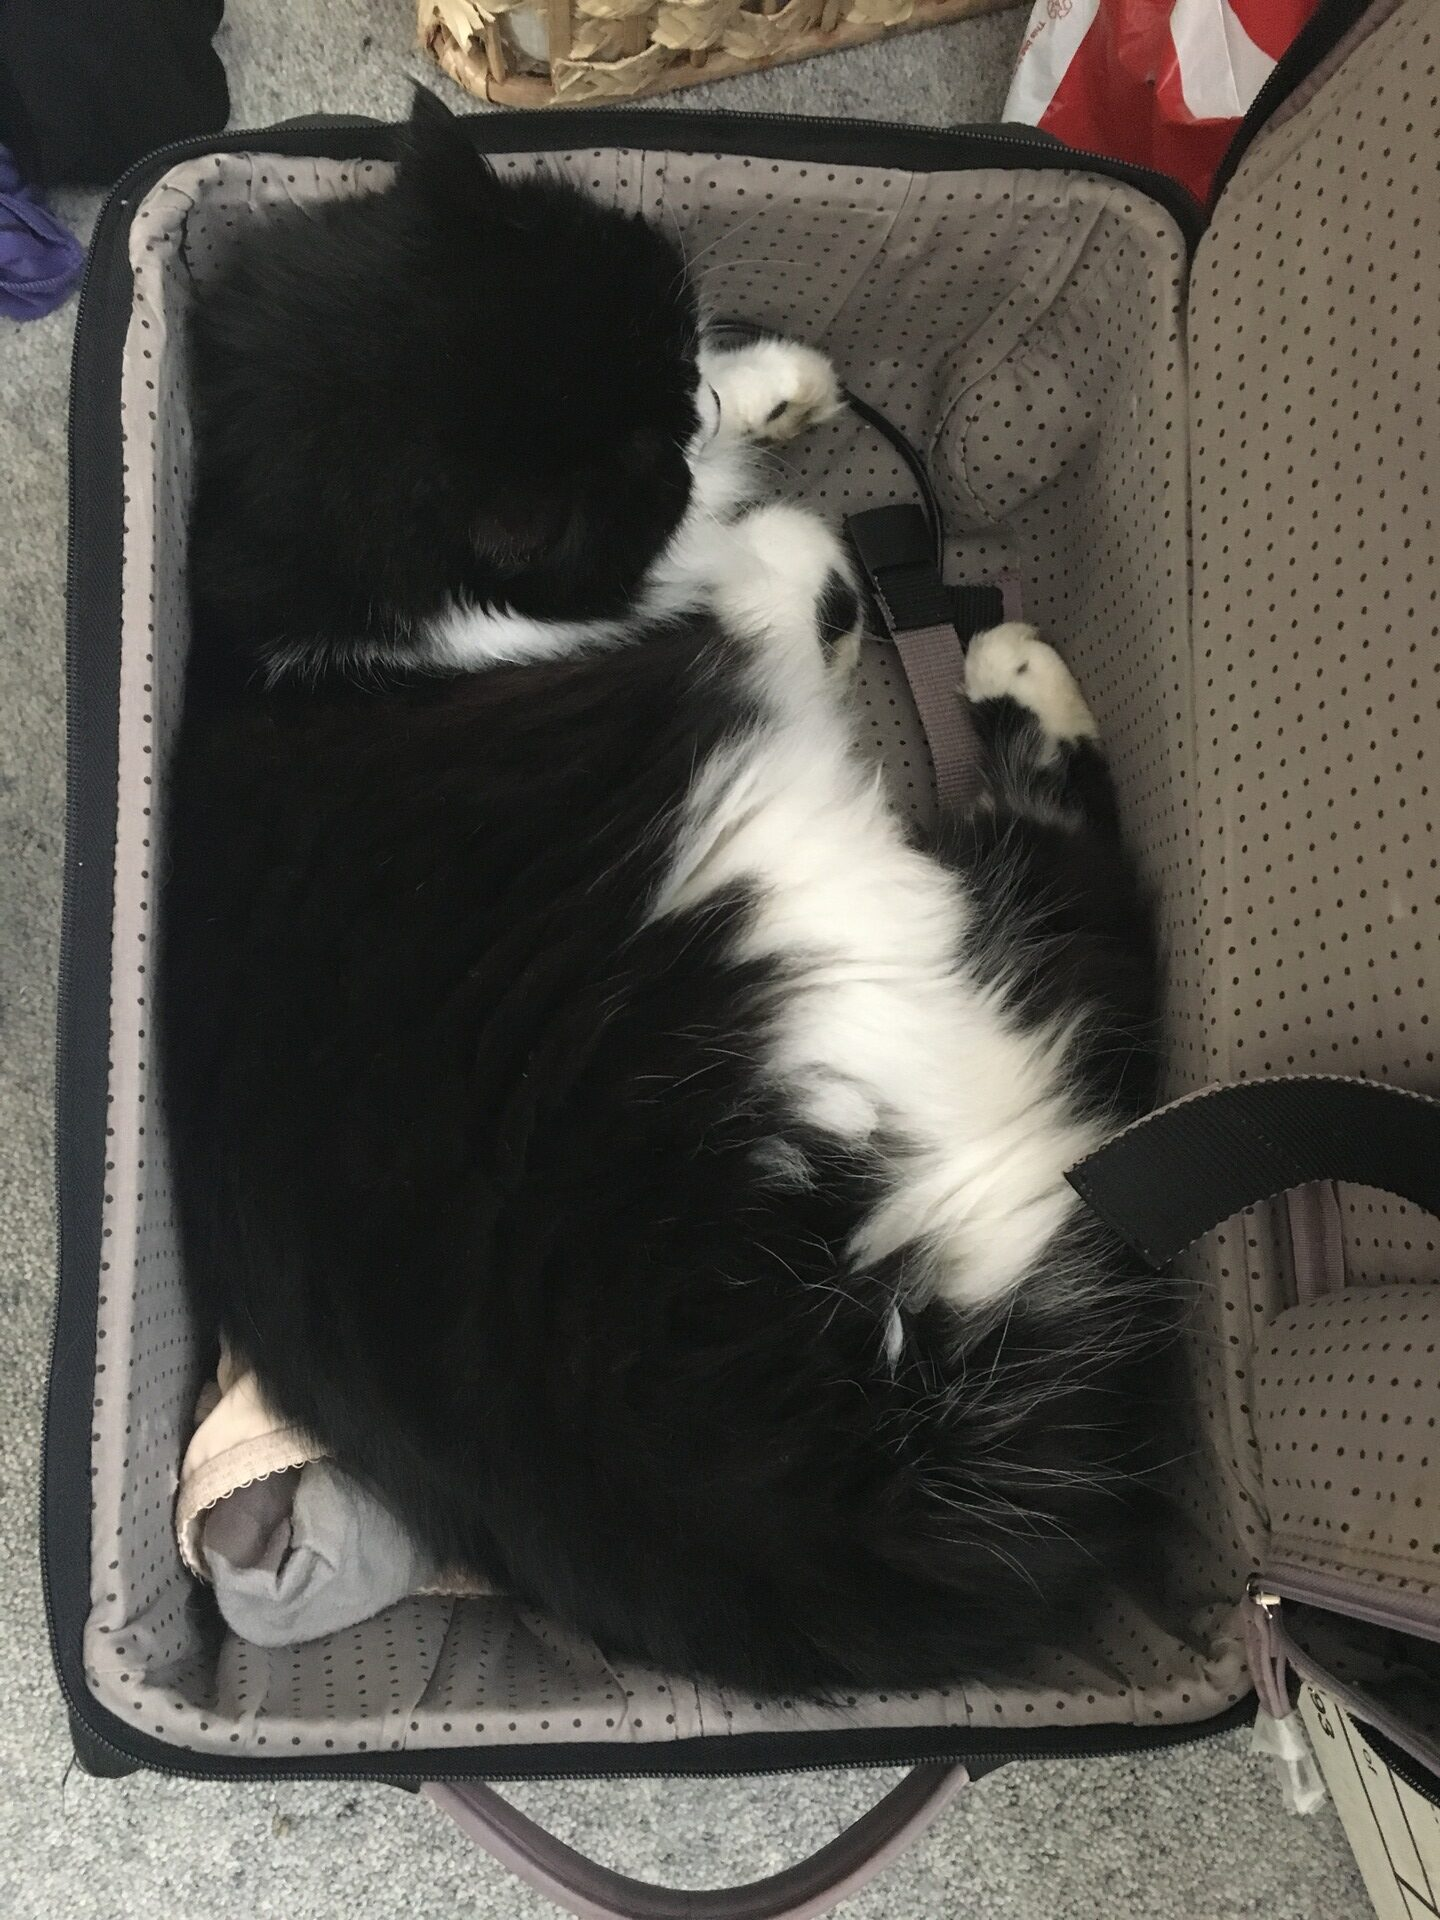 A suitcase makes a comfy bed in 2017